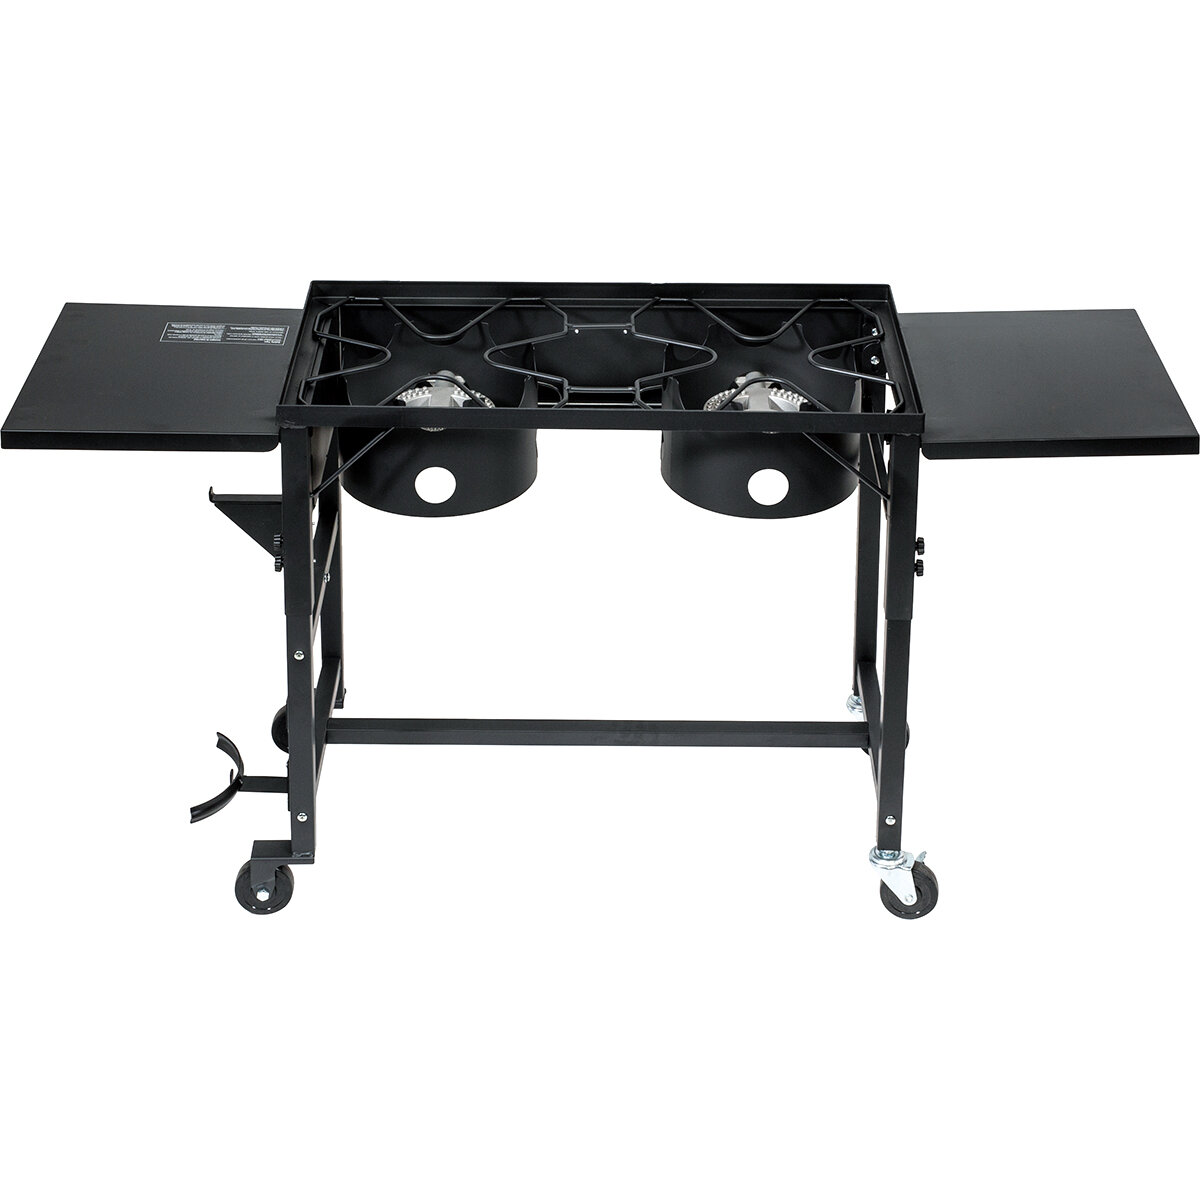 Barton 2 Burner Propane Outdoor Stove Reviews Wayfair